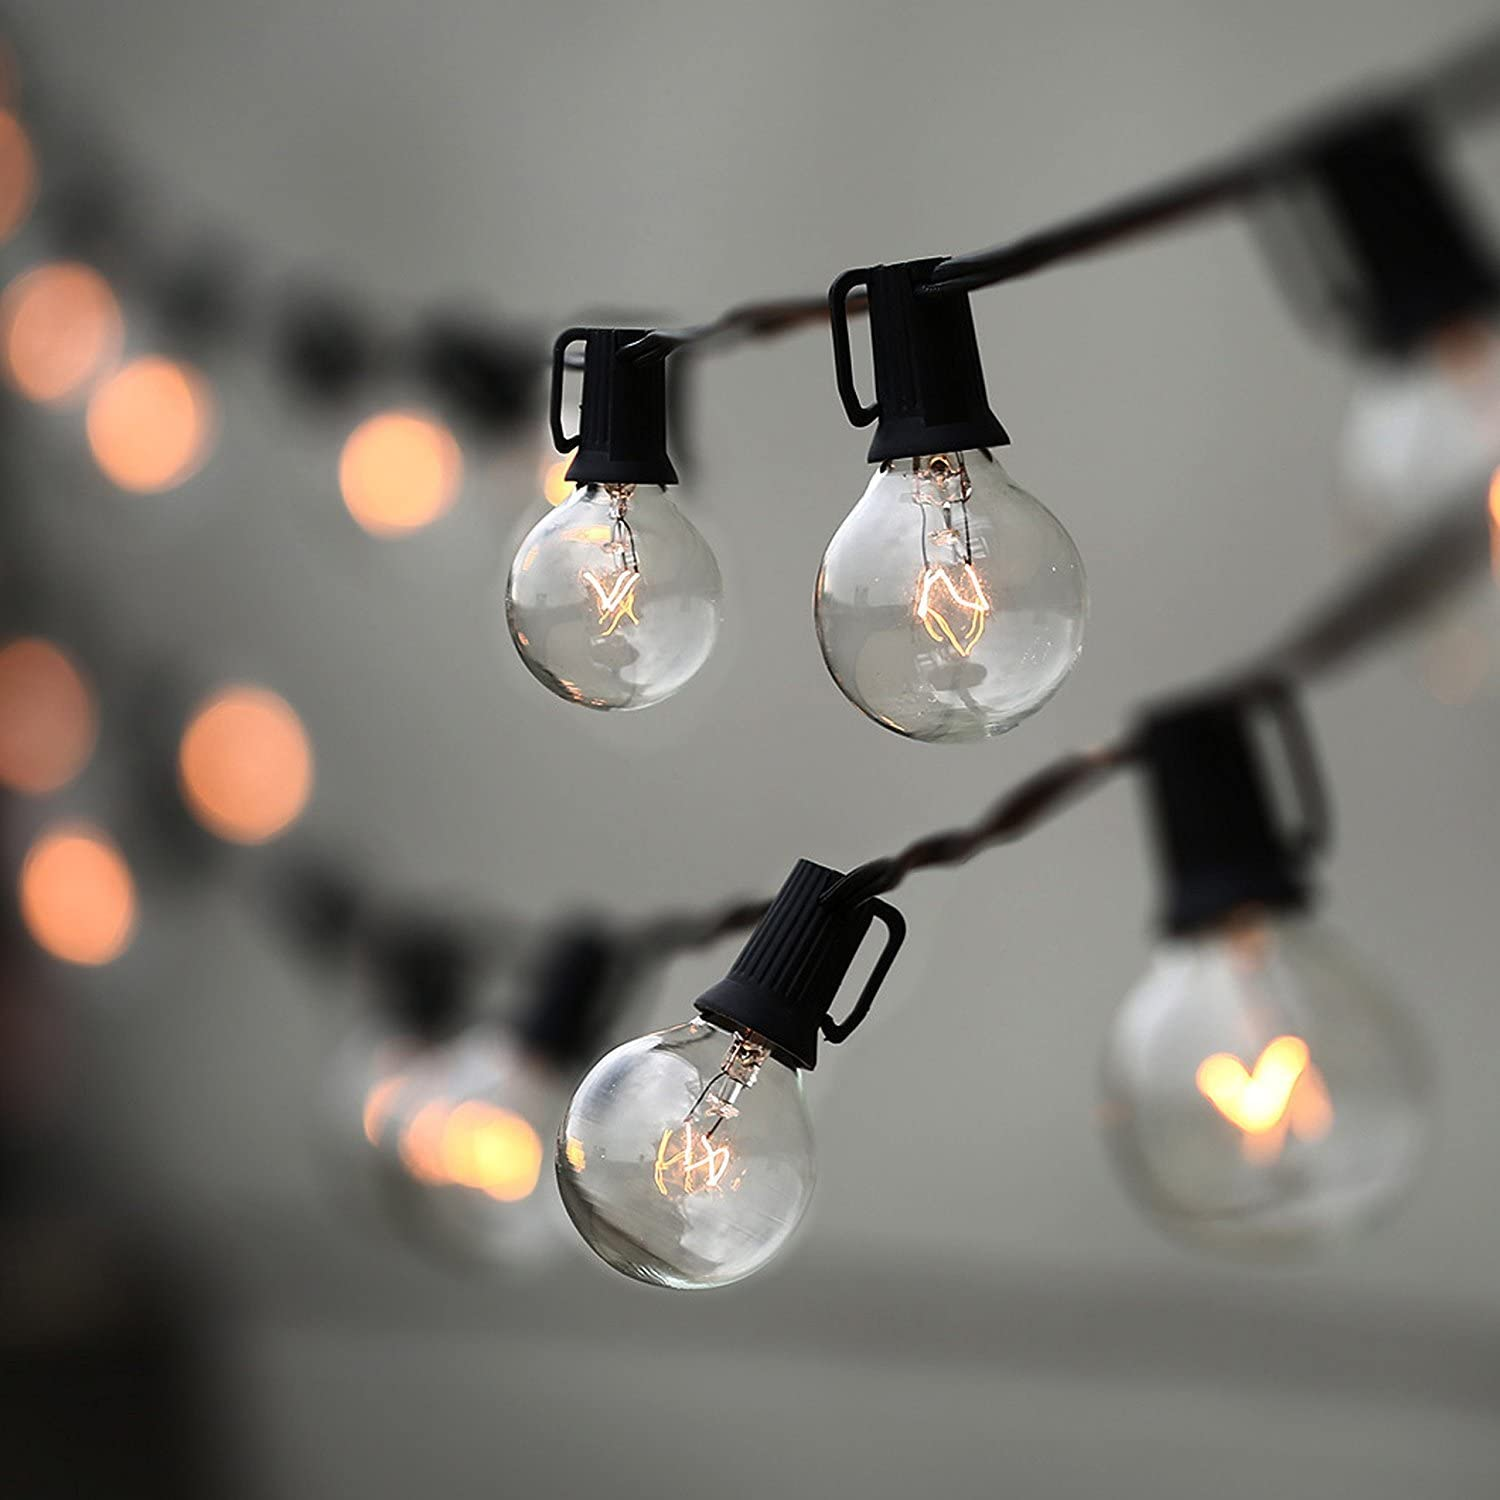 Industrial Steampunk String Lights